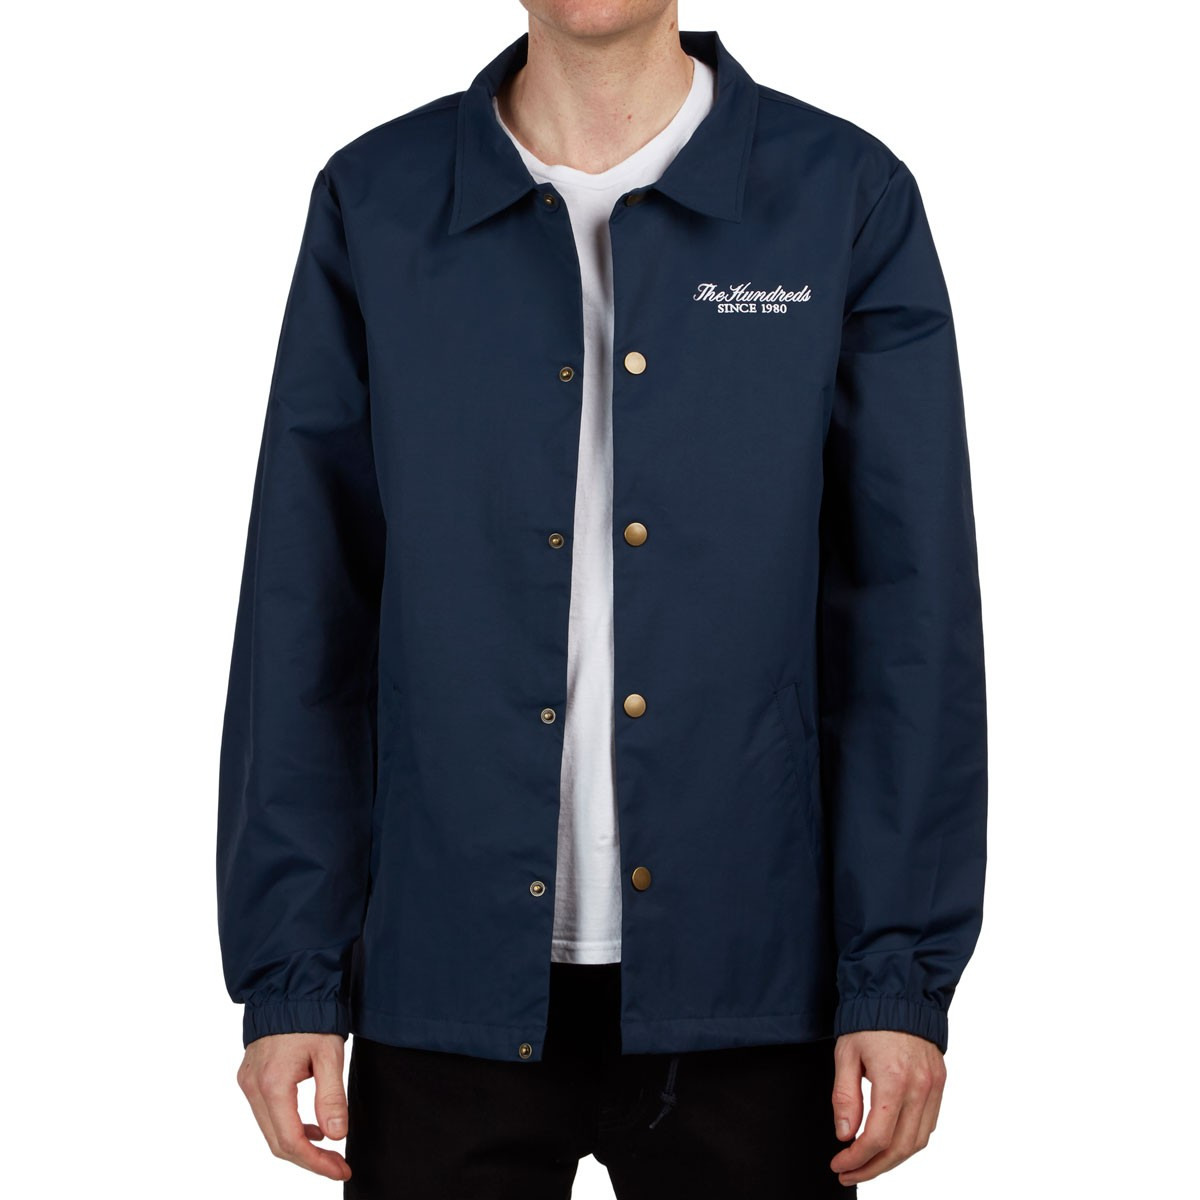 dab8b71a2b9e The Hundreds Rich Coaches Jacket - Navy